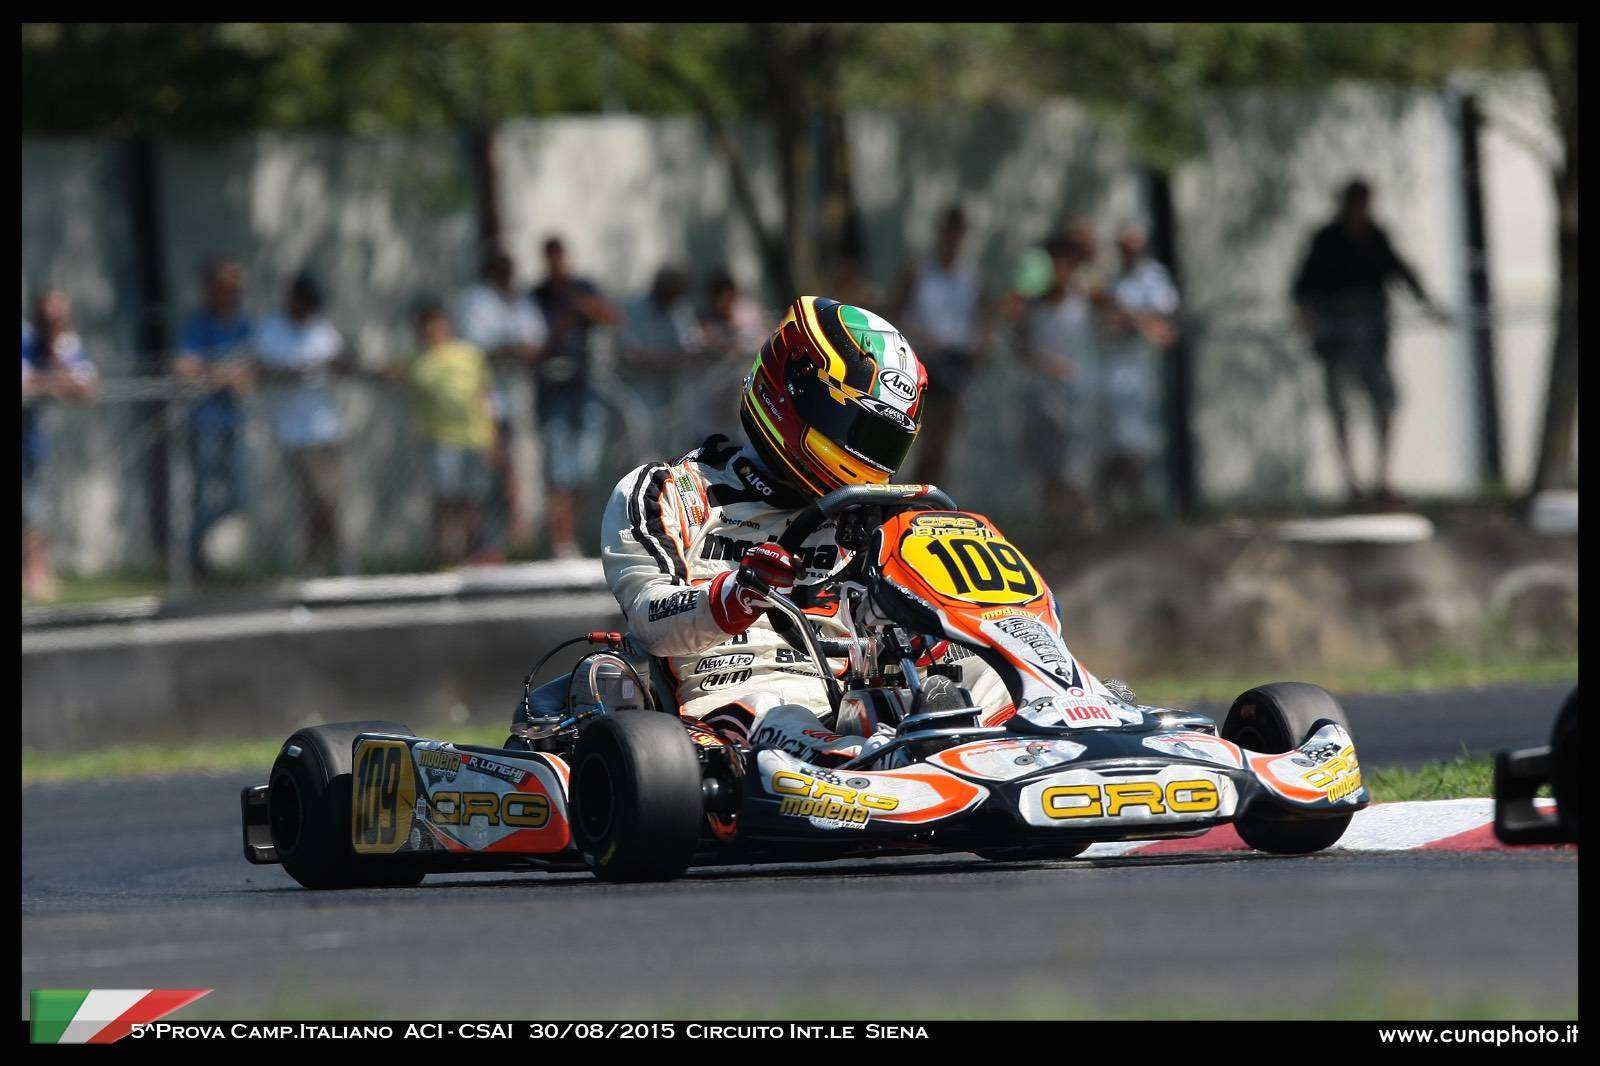 imaf-reasing-seats-karting-24